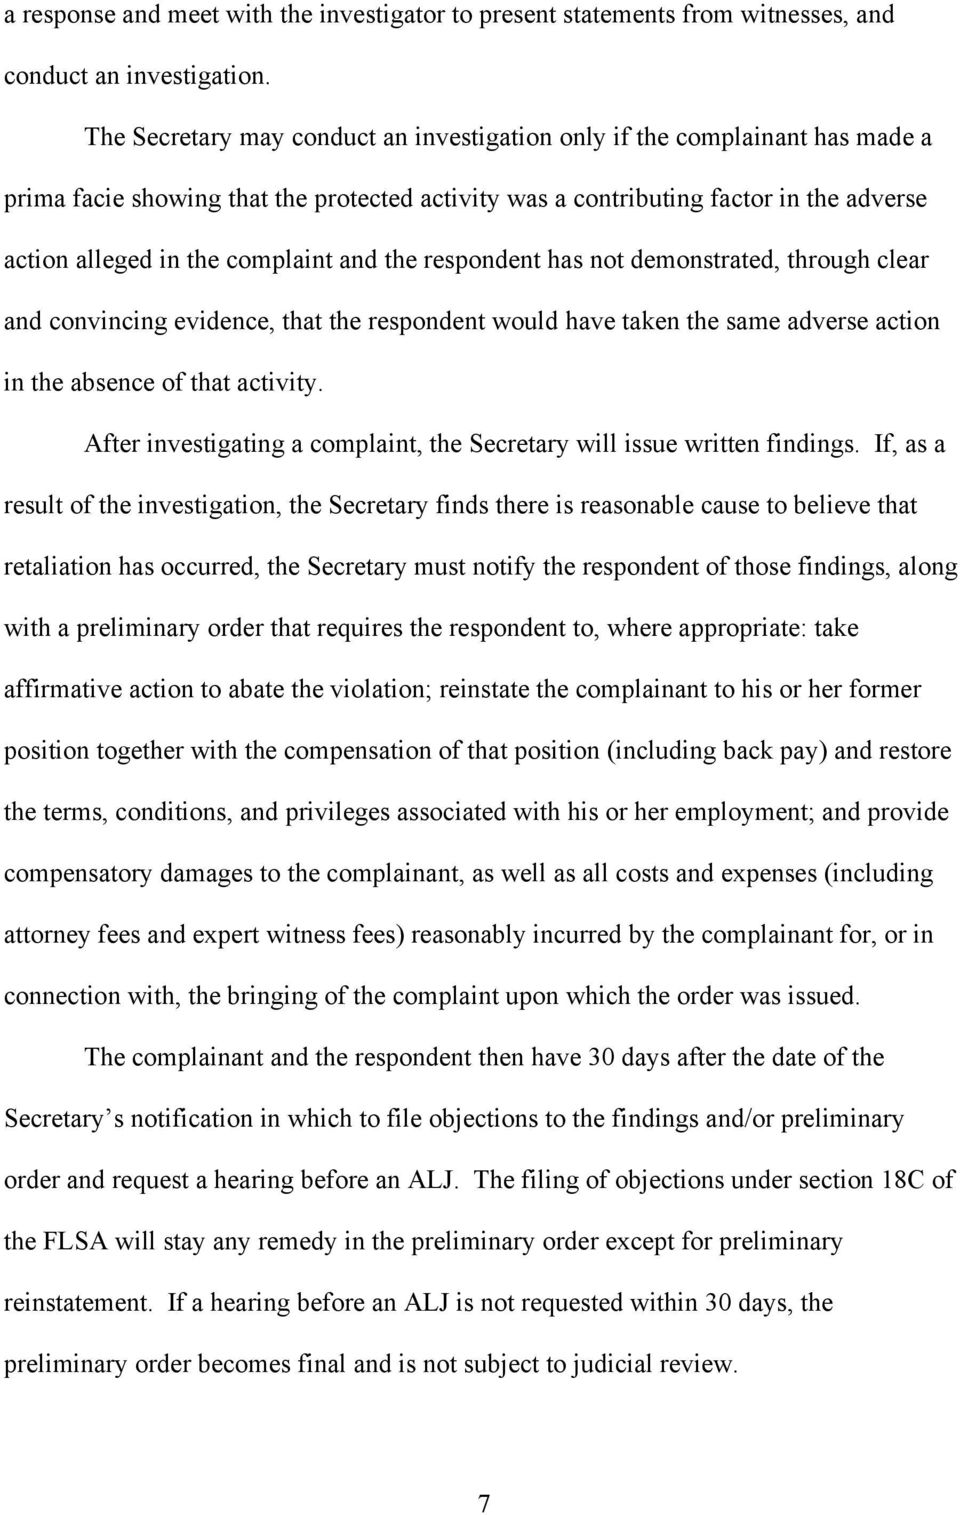 and the respondent has not demonstrated, through clear and convincing evidence, that the respondent would have taken the same adverse action in the absence of that activity.